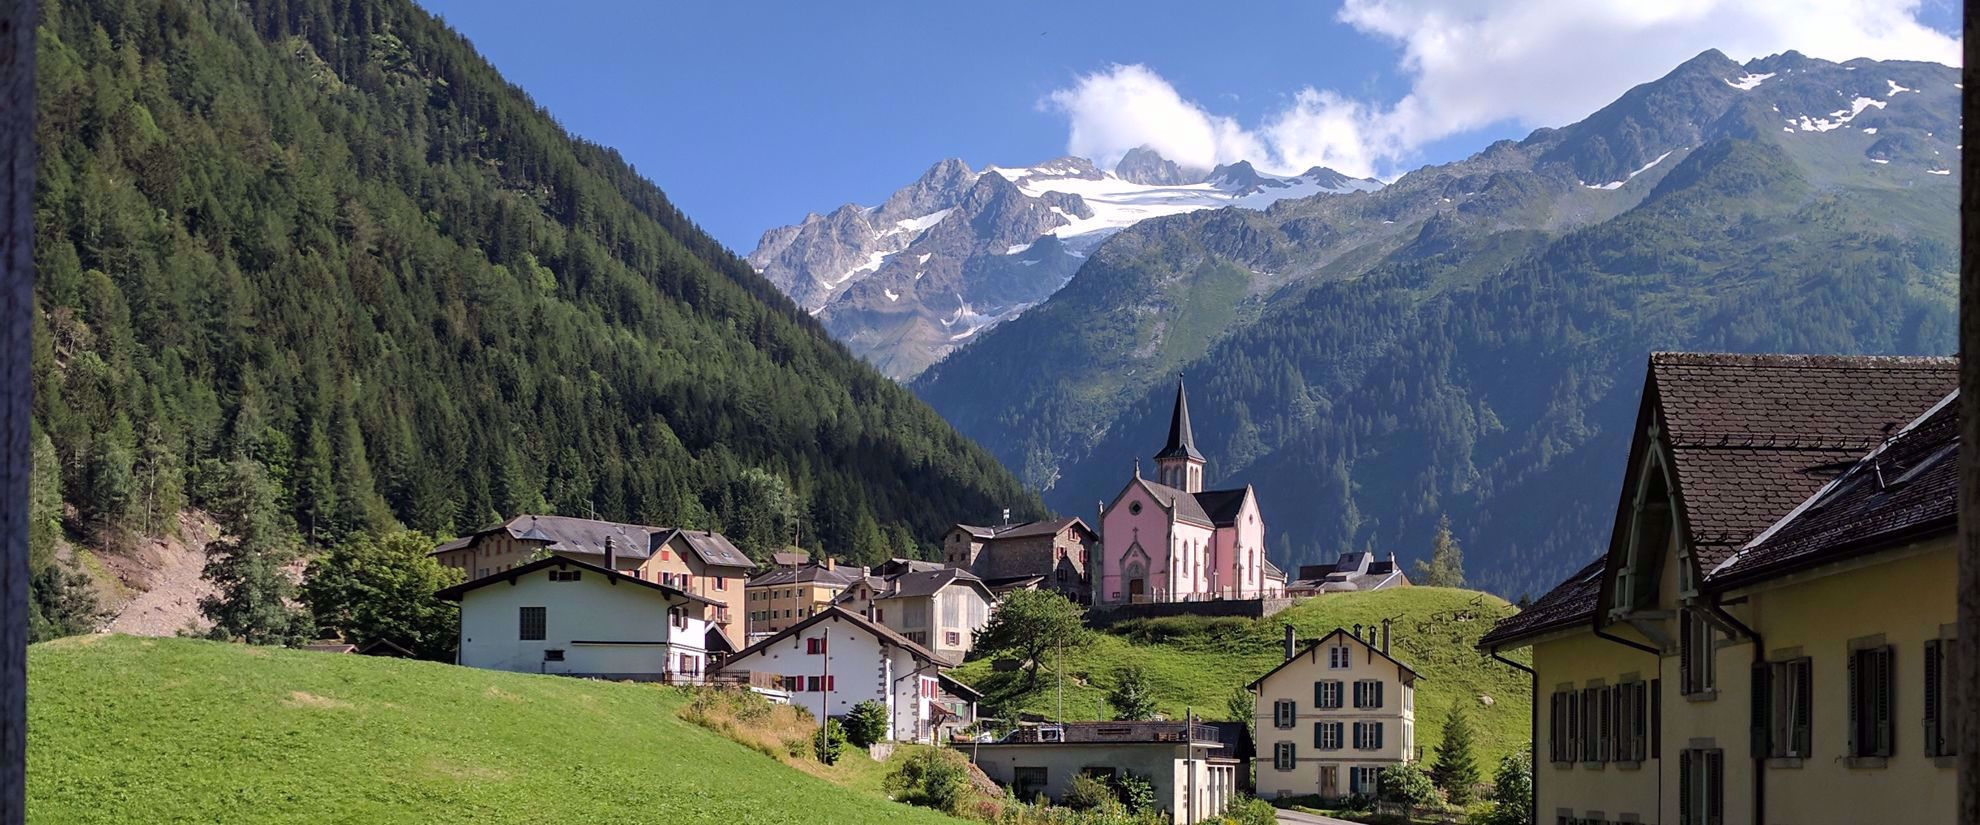 Tour du Mont Blanc and the Chamonix Valley